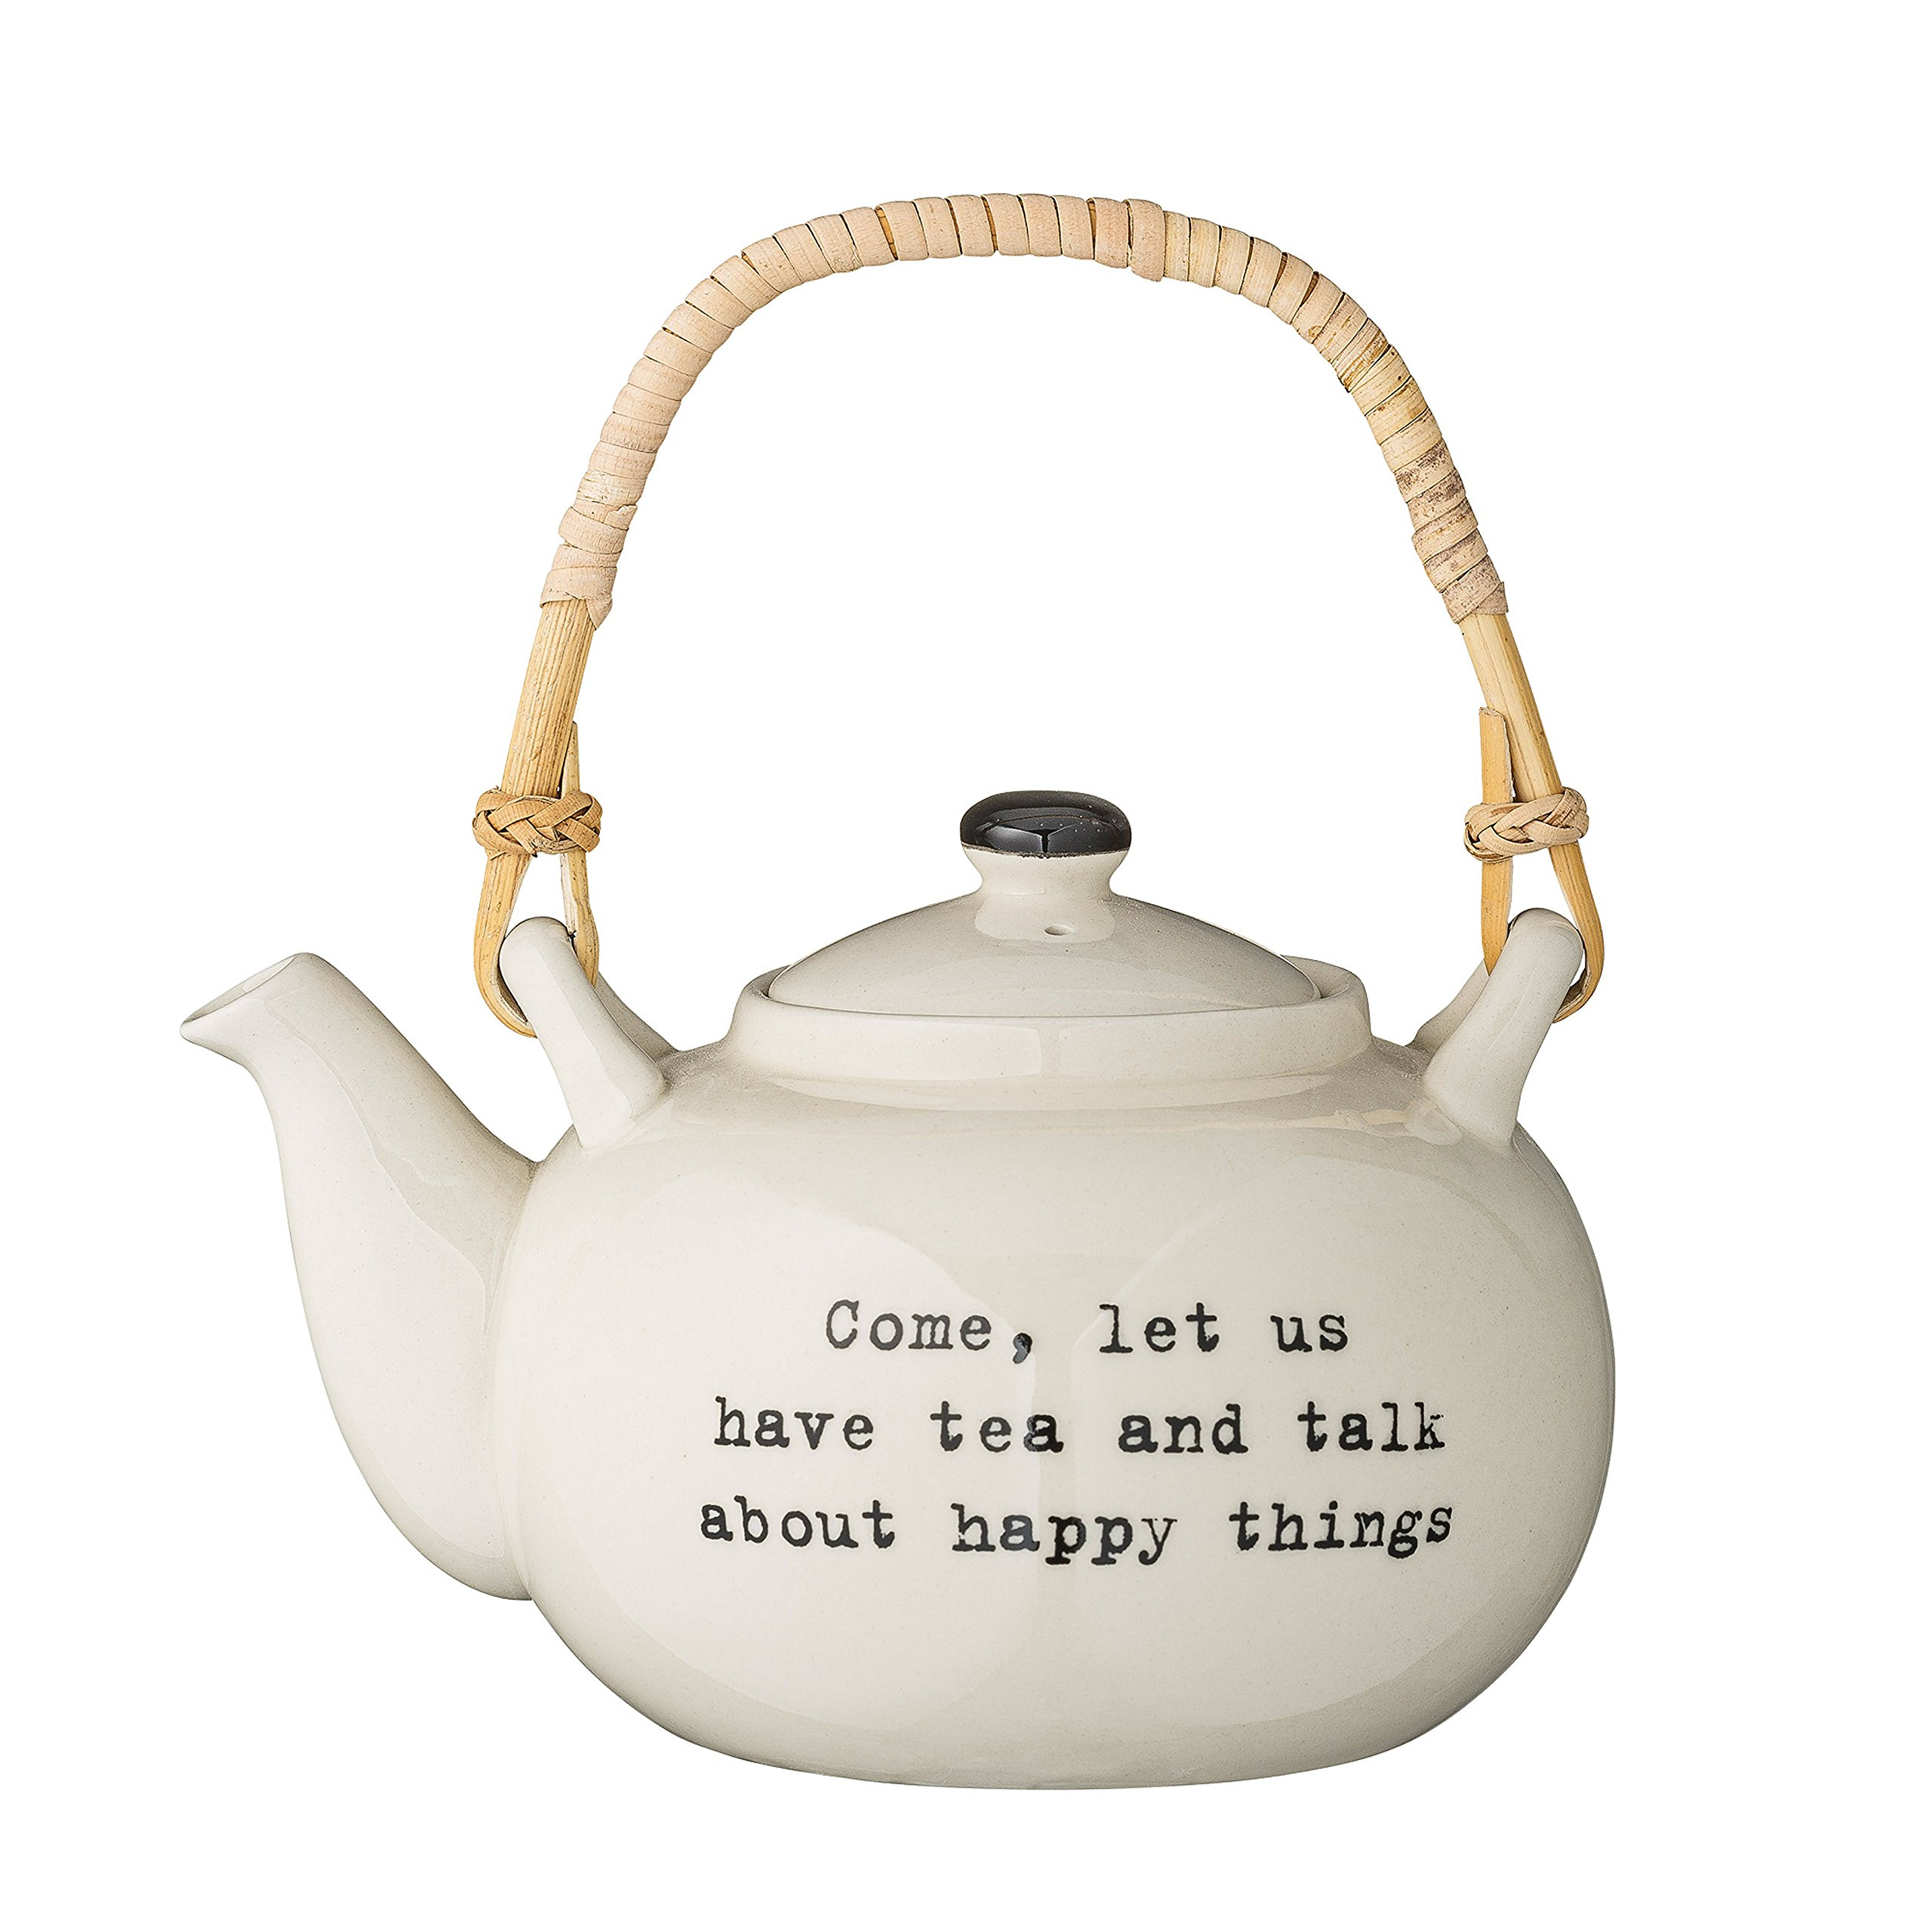 Bloomingville A21100268''Come, let us have tea and talk about happy things'' Tea Pot with Bamboo Handle